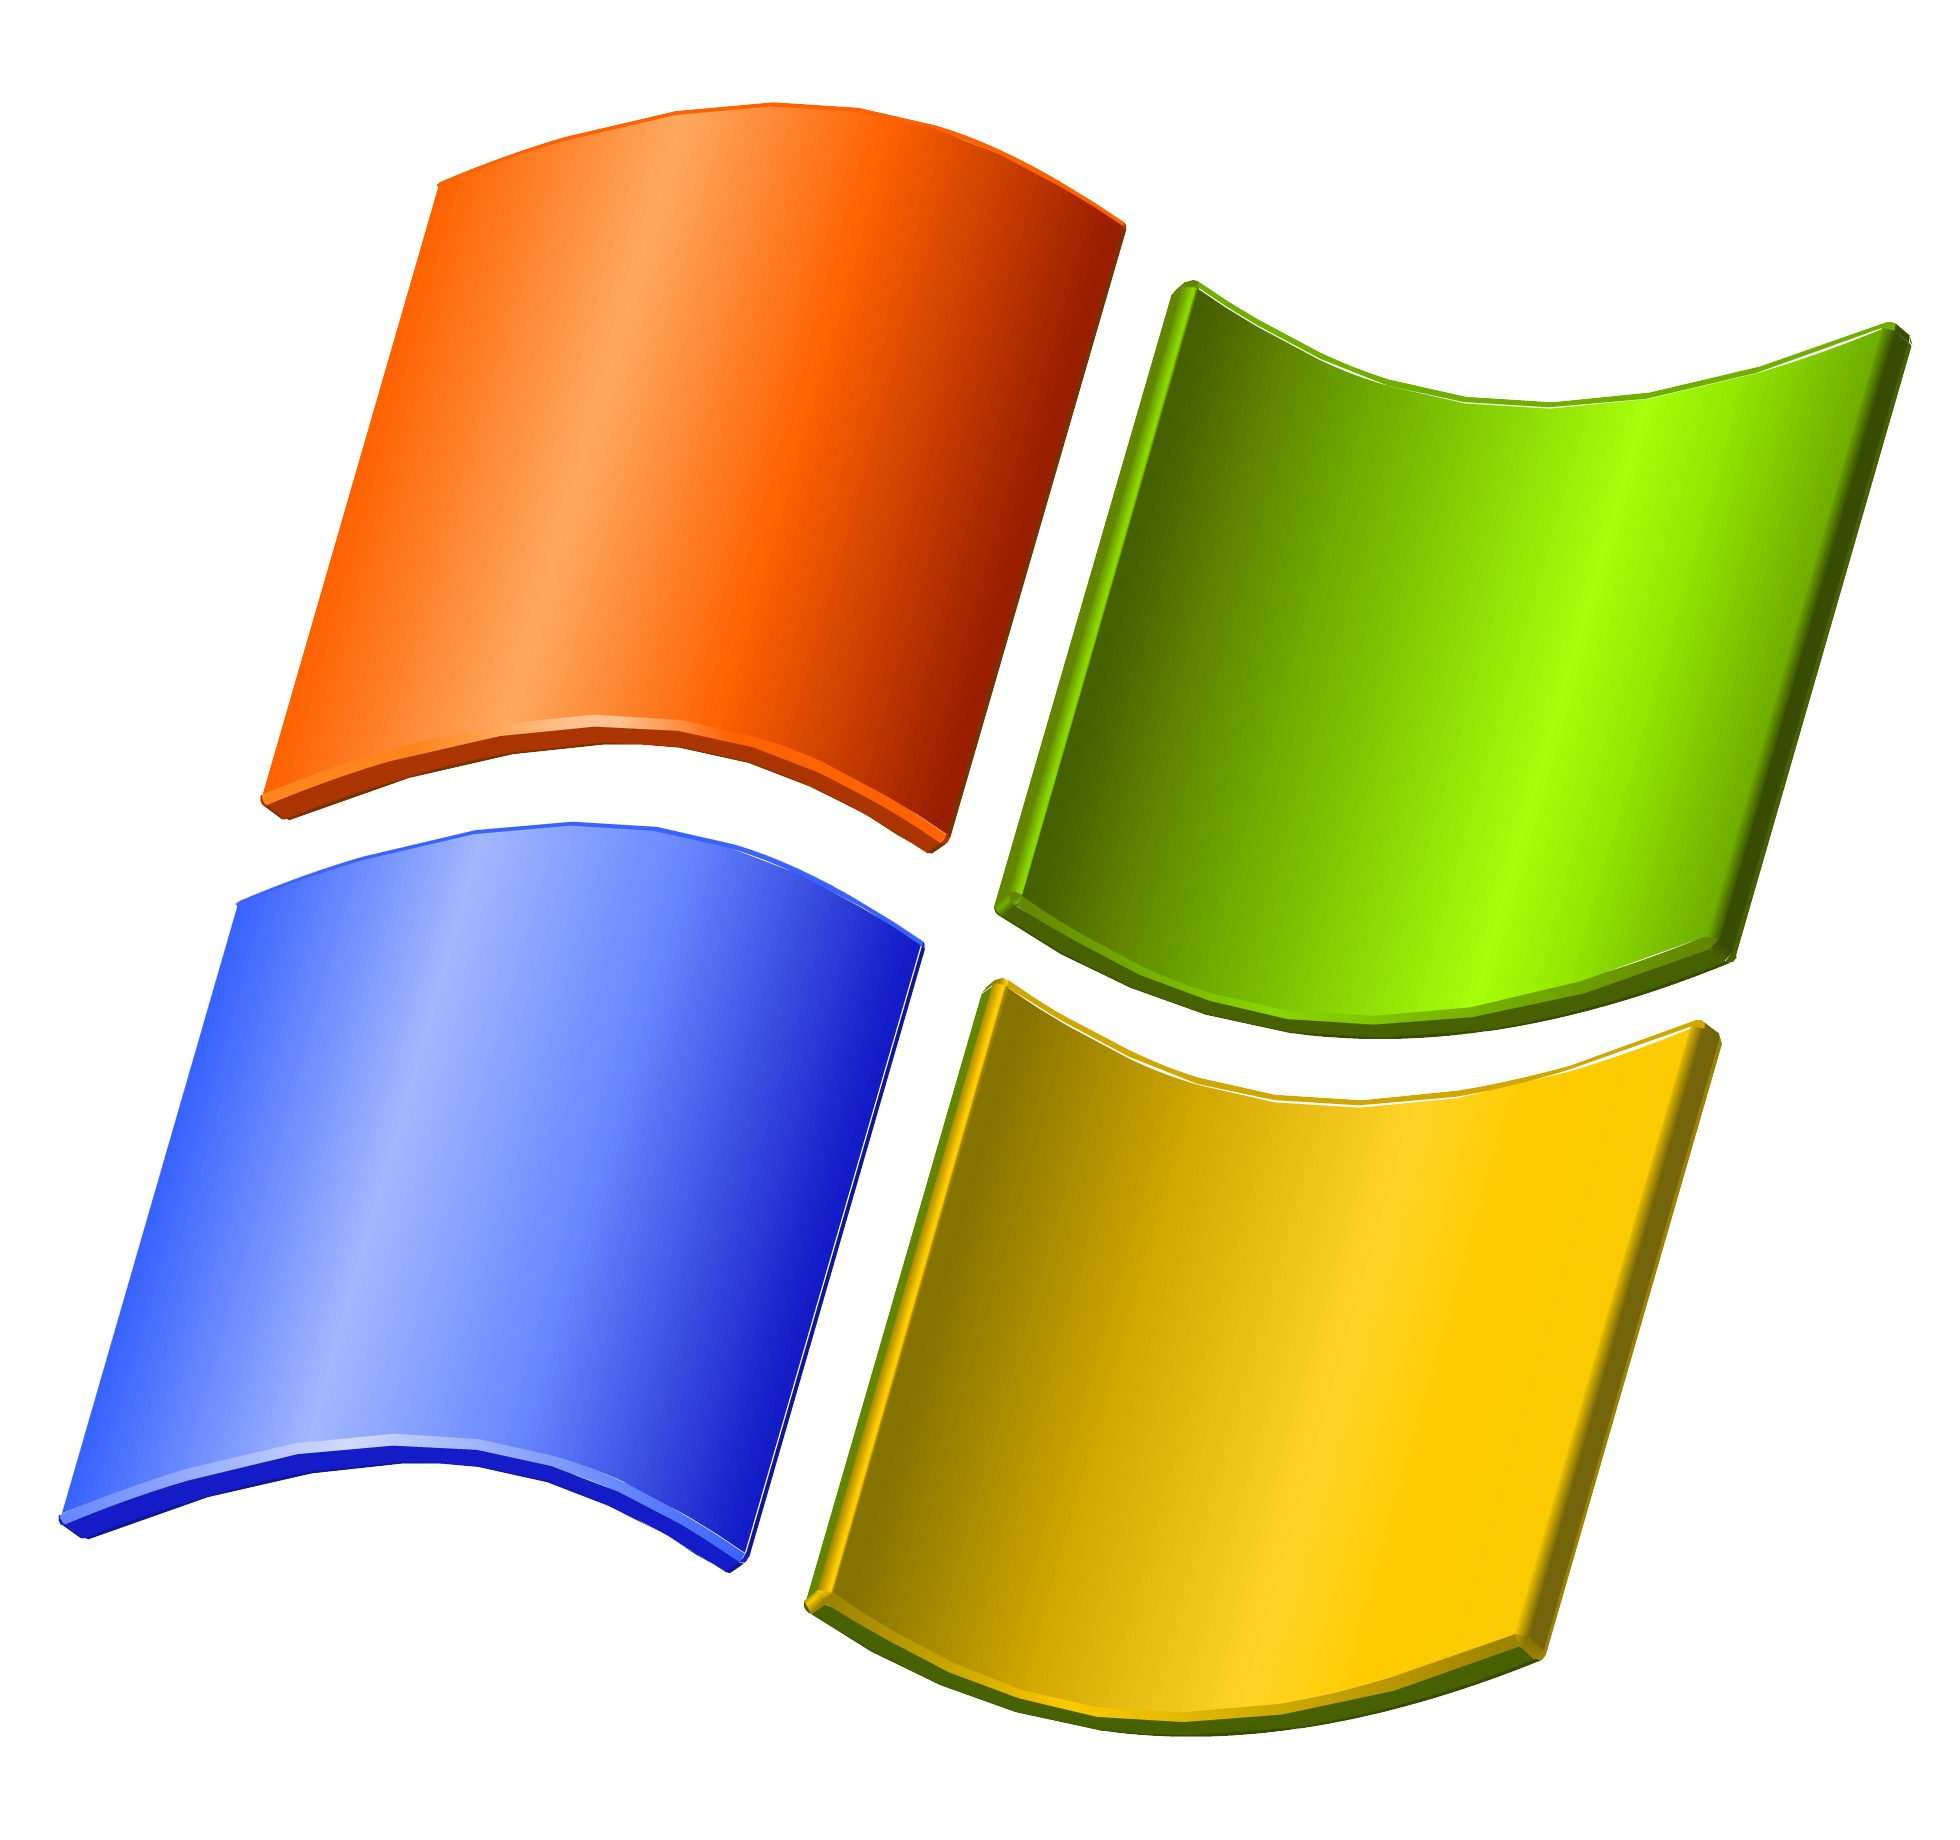 Windows logos png images. Win clipart window line